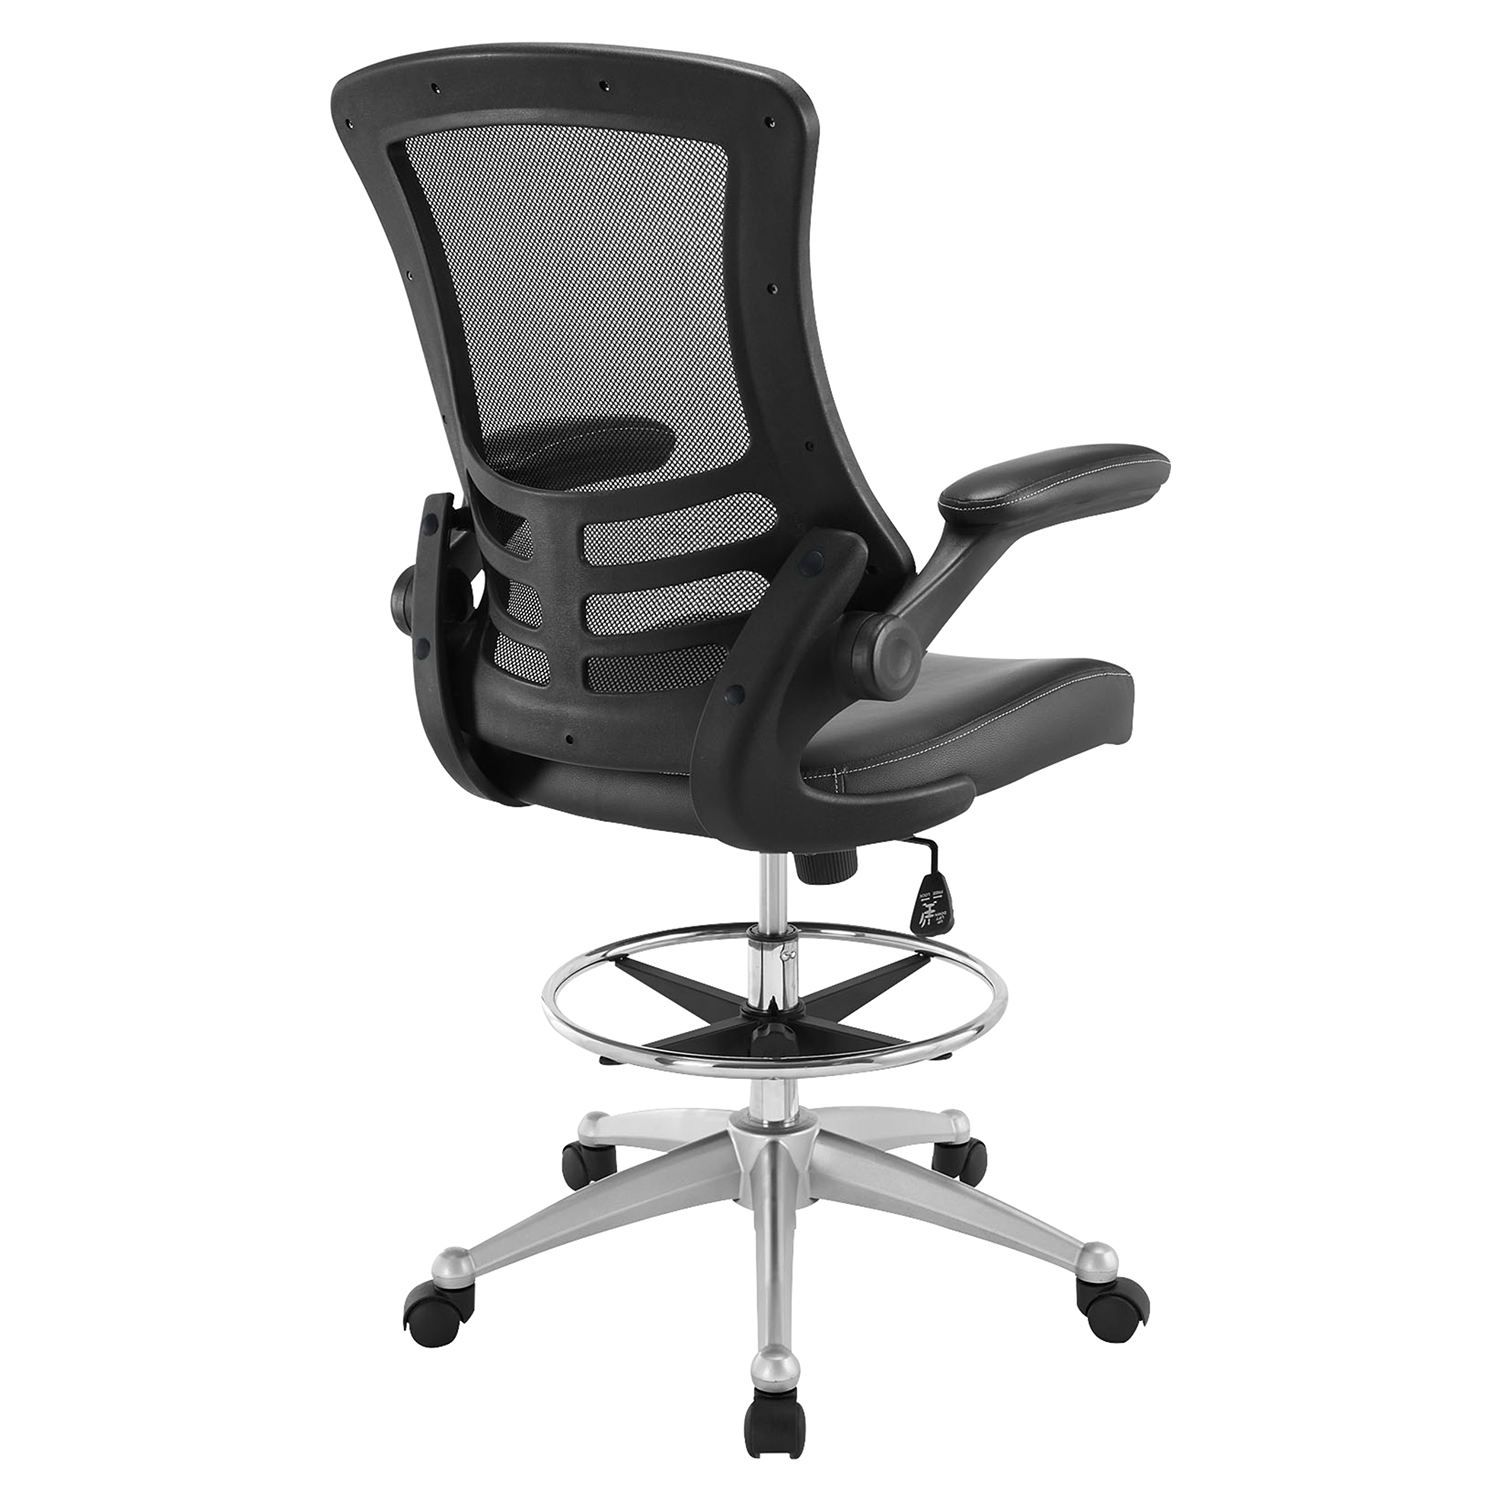 Attainment Leatherette Drafting Stool - Adjustable Seat, Swivel, Black - EEI-1422-BLK